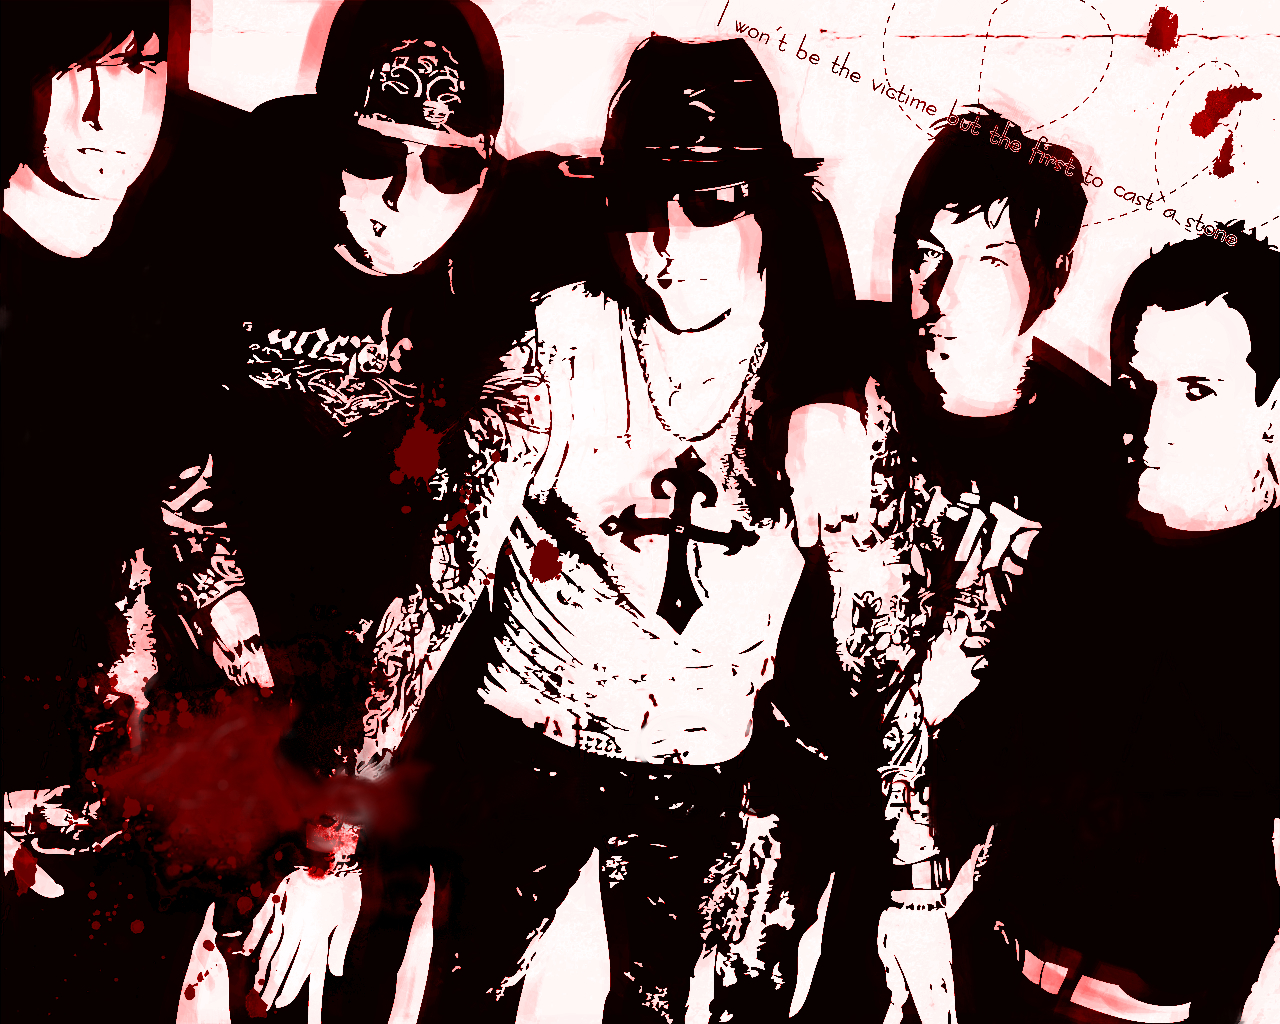 red avenged sevenfold posters HD Wallpaper